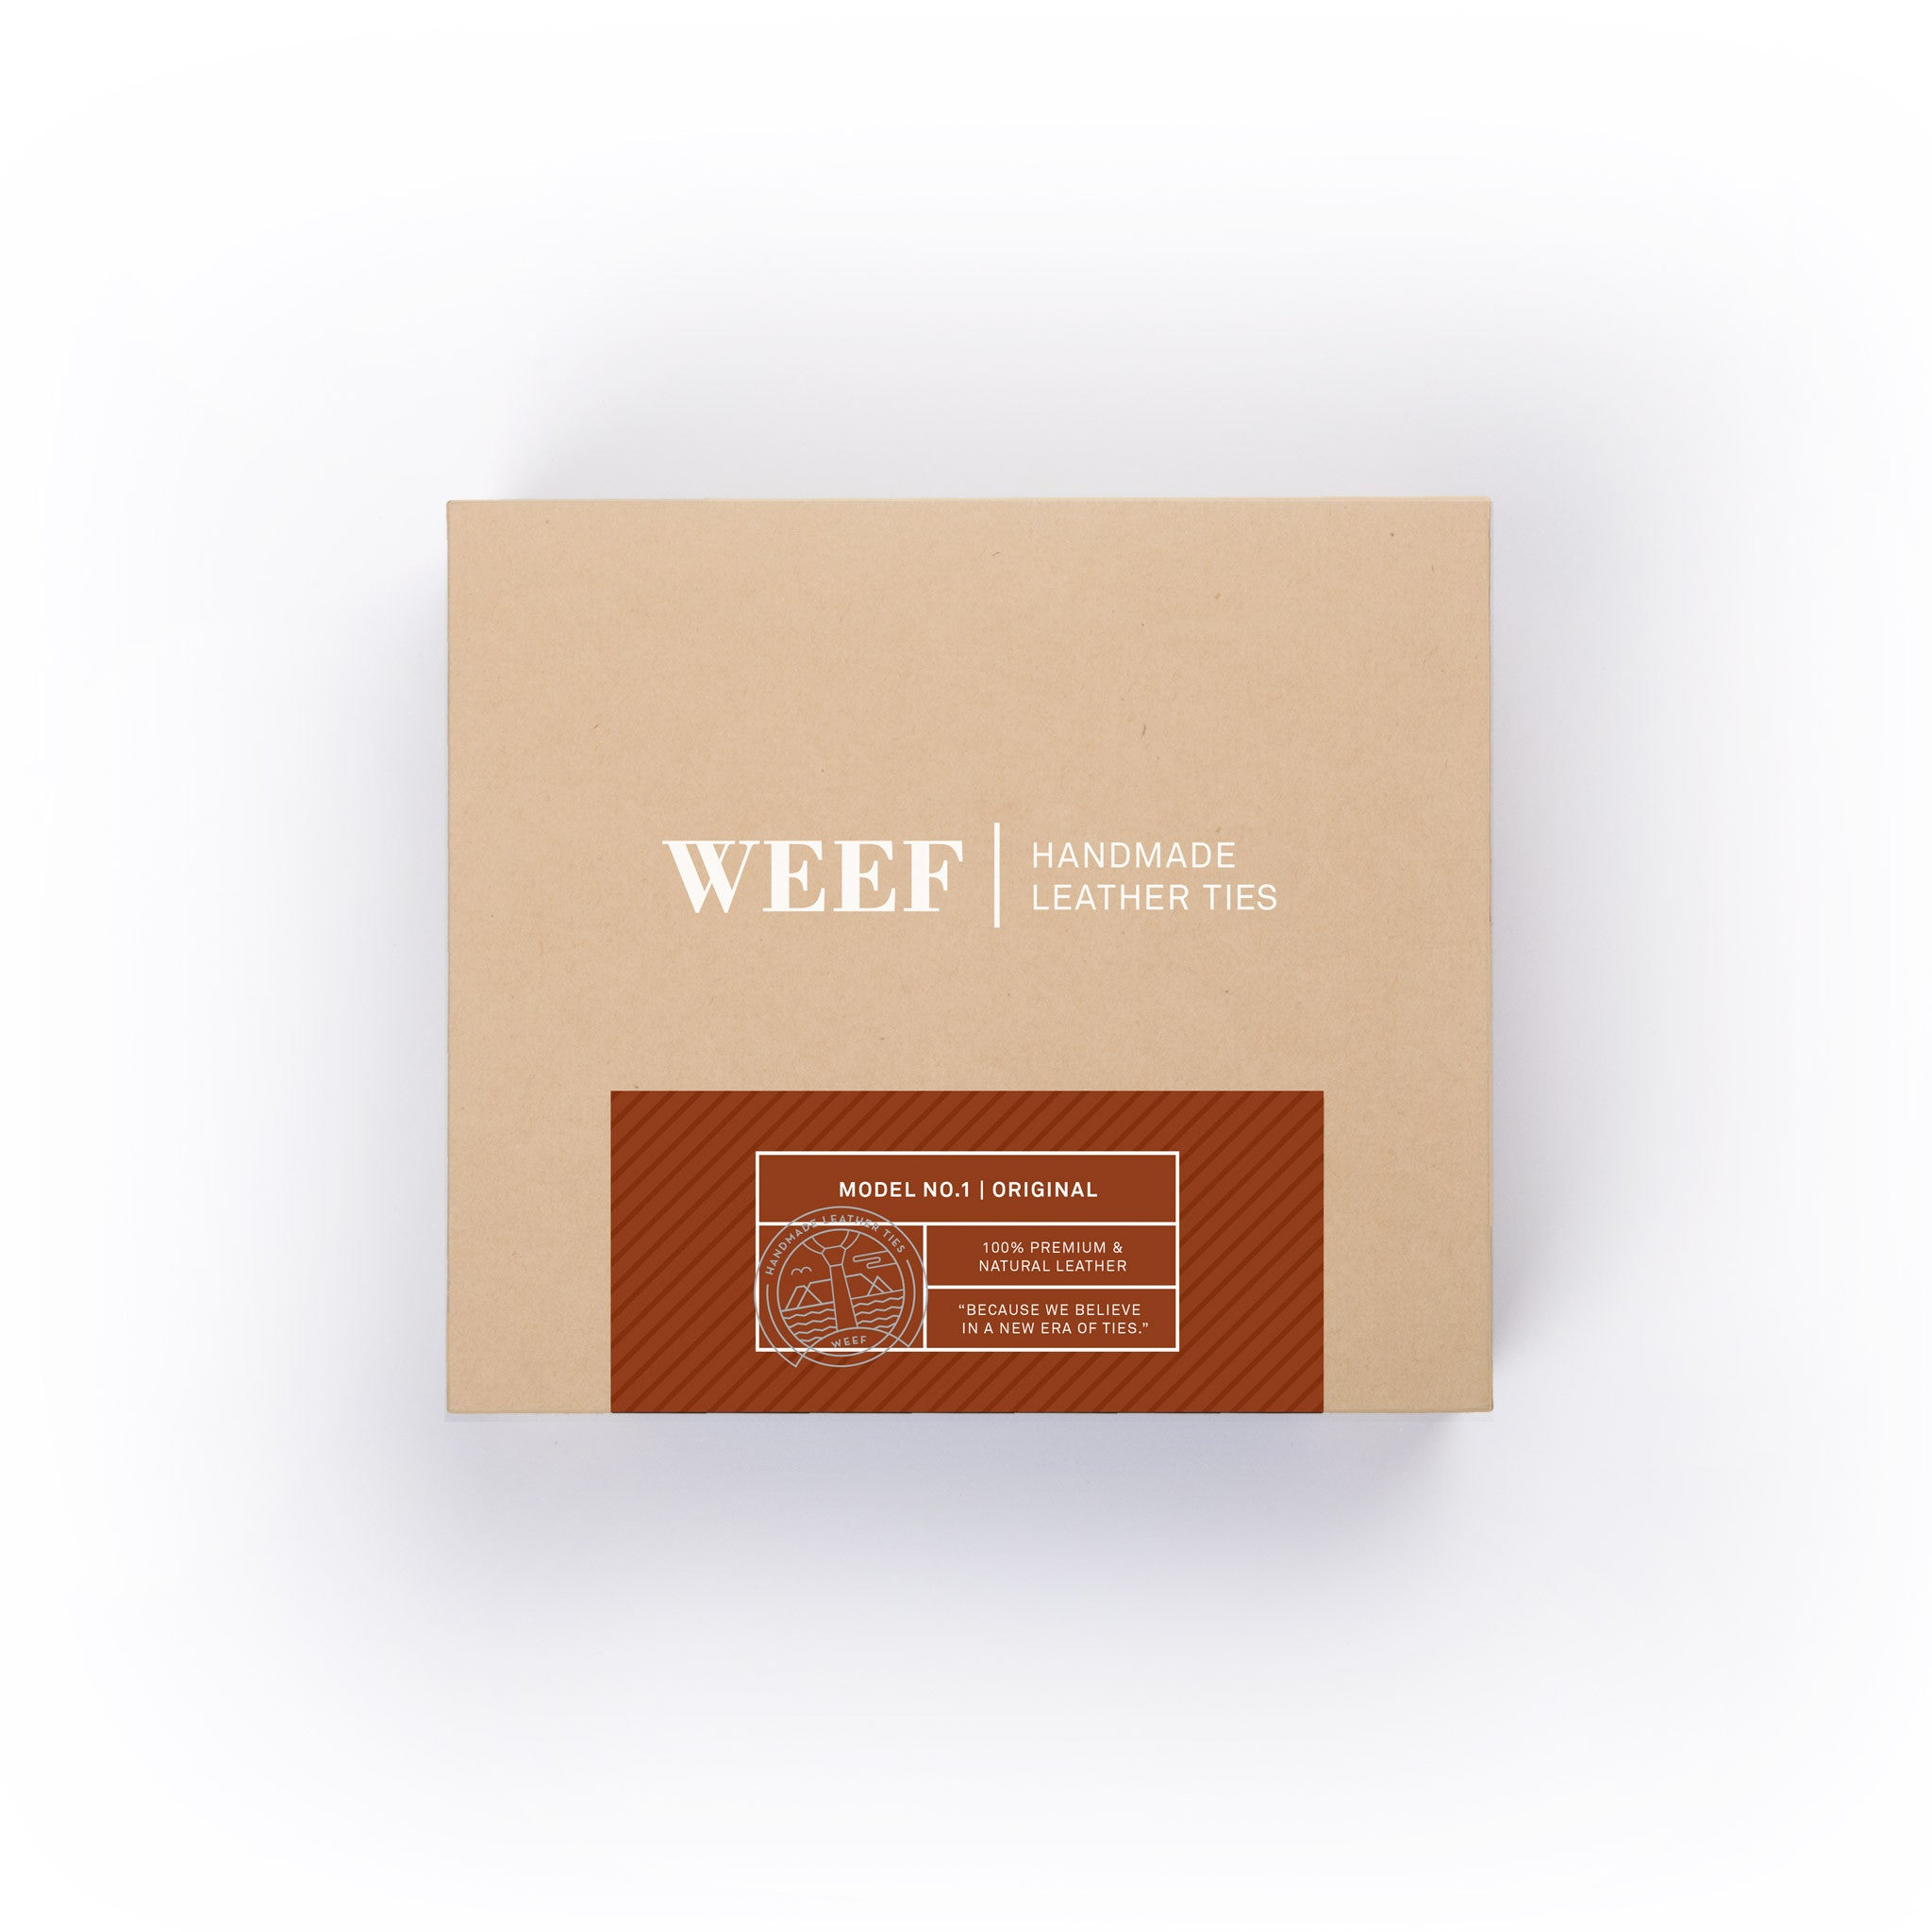 This is the premium packaging box of the cognac tan WEEF handmade leather tie.